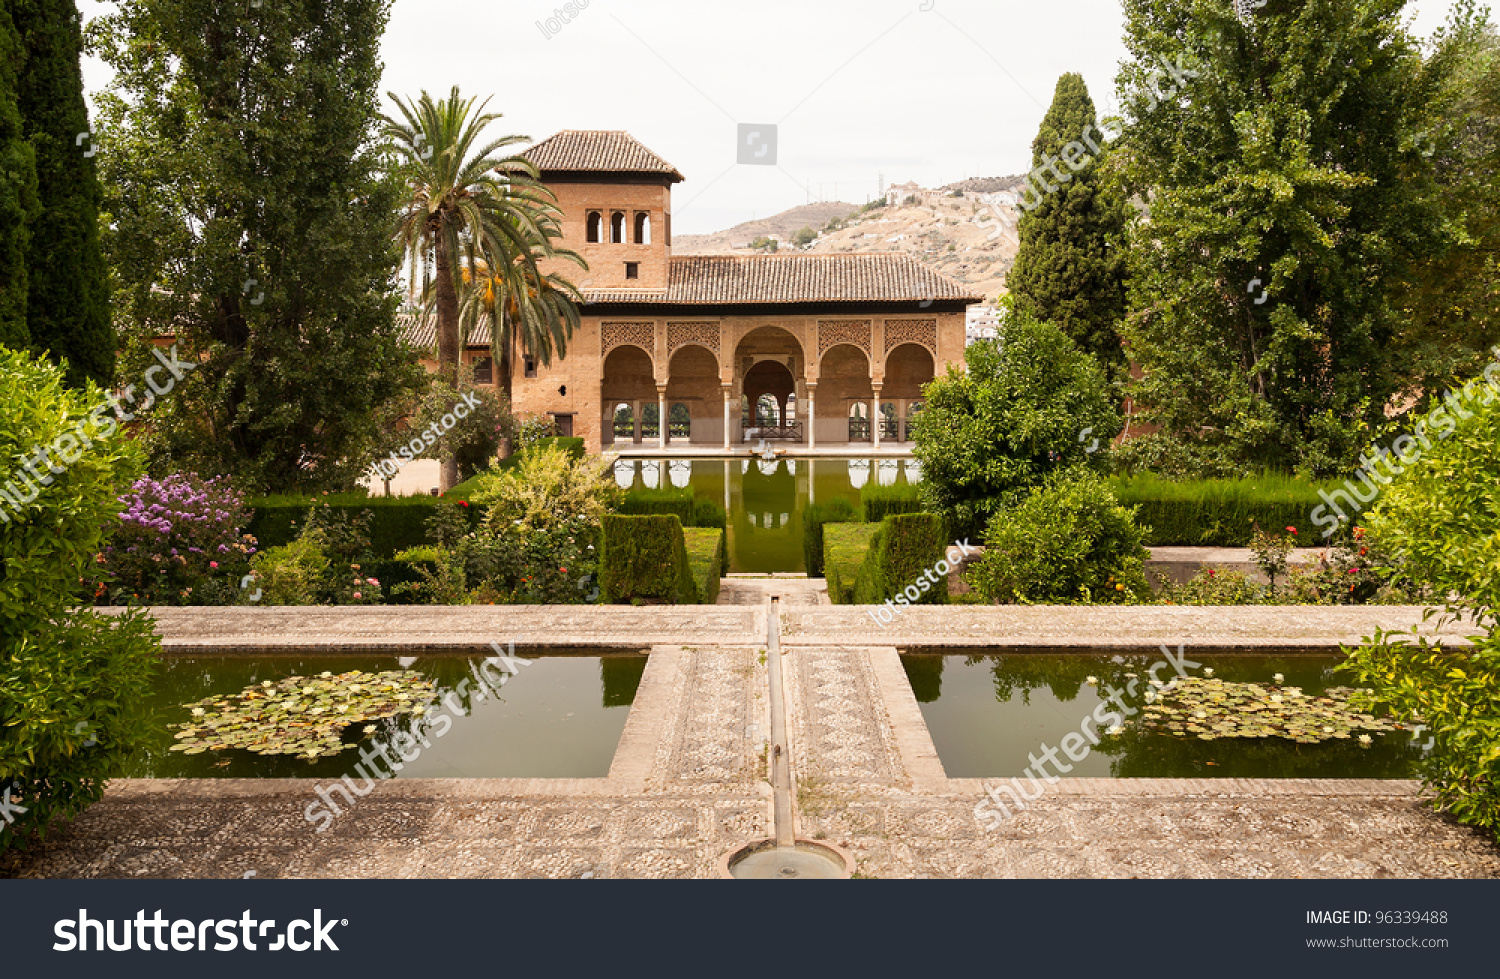 Generalife Gardens And Palace Inside The Alhambra In Granada, Spain Stock Pho...